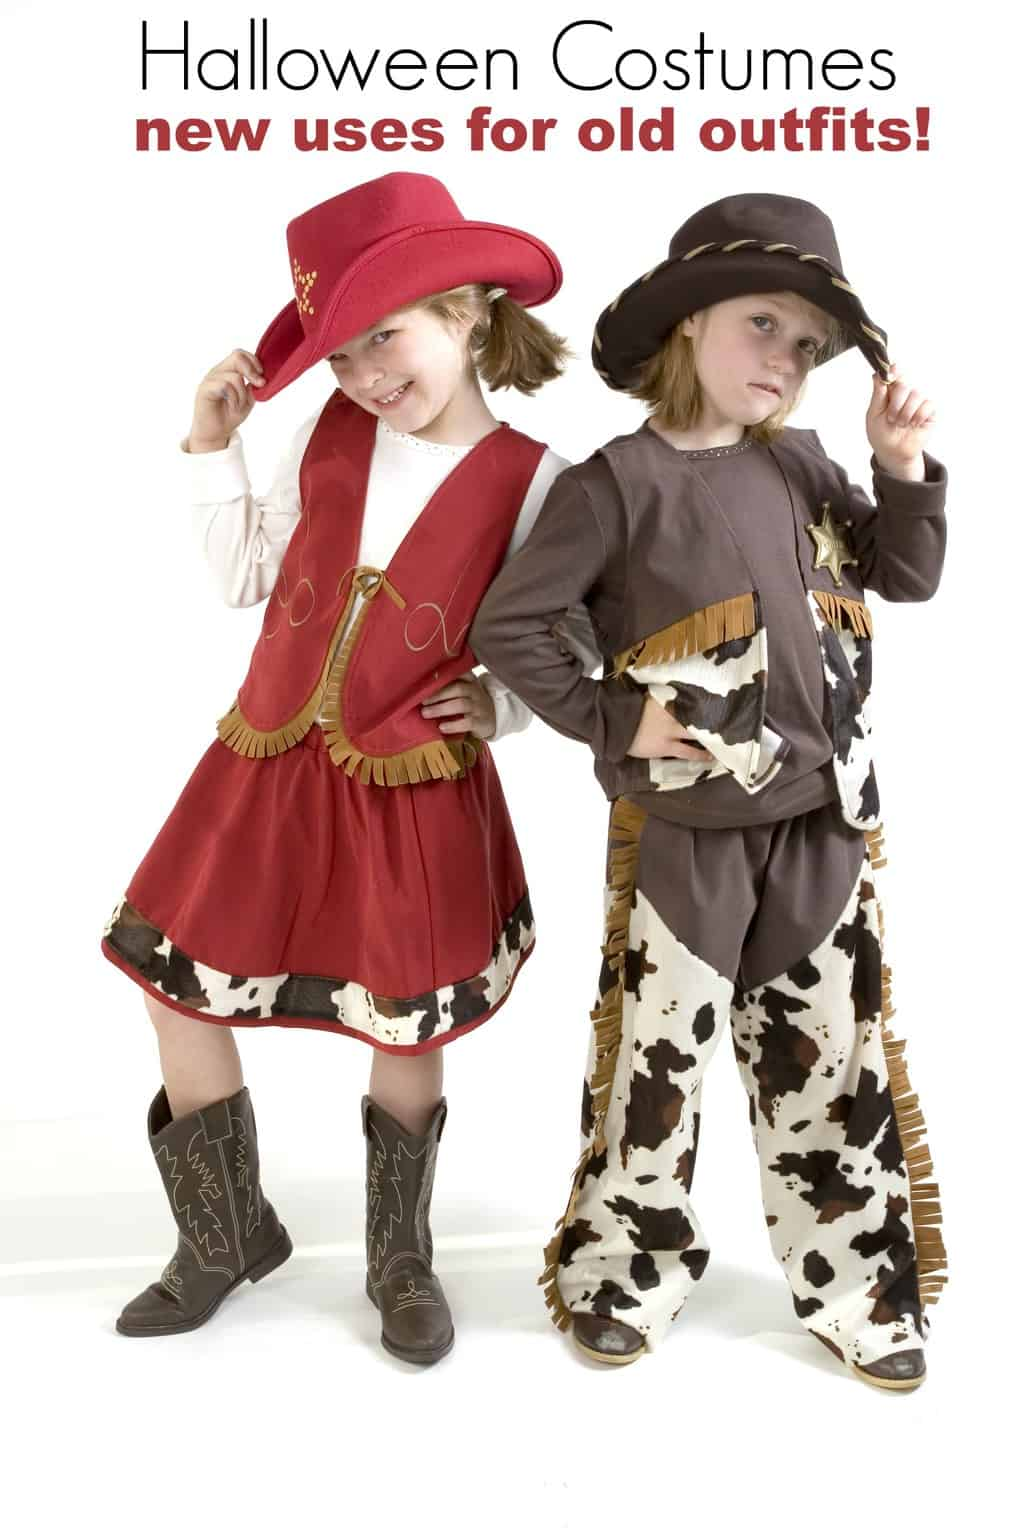 Wondering what to do with Halloween costumes once the trick or treating is over?  Here are some tips for upcycling, selling, and reusing old costumes.